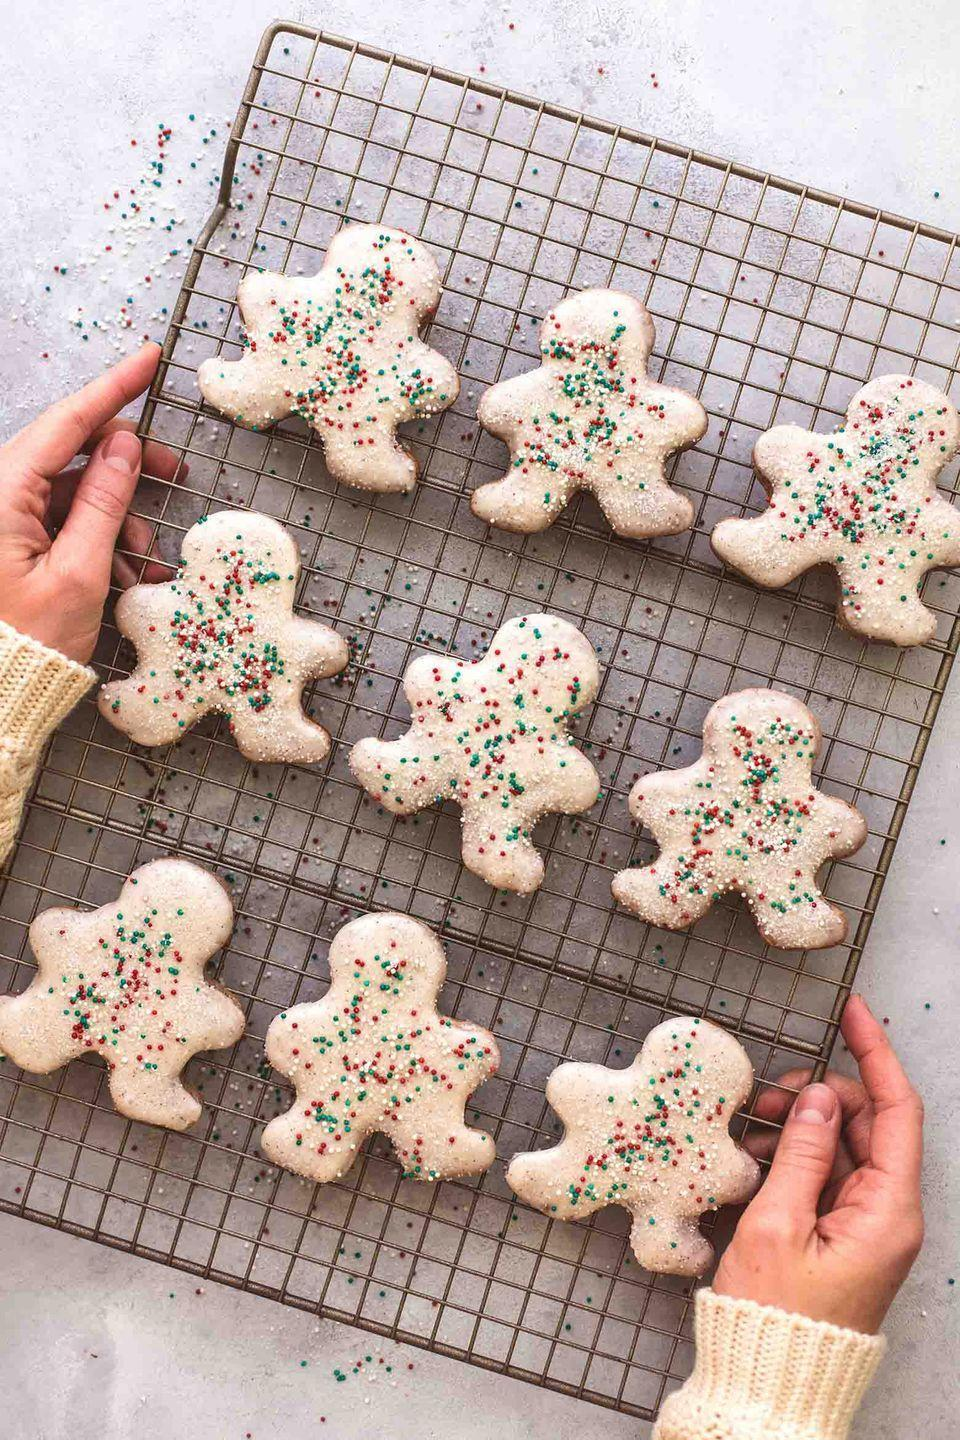 "<p>These absolutely adorable gingerbread men are super-simple — you don't even have to chill the dough.</p><p><strong>Get the recipe at <a href=""https://www.lecremedelacrumb.com/gingerbread-sugar-cookies/"" rel=""nofollow noopener"" target=""_blank"" data-ylk=""slk:Creme de la Crumb"" class=""link rapid-noclick-resp"">Creme de la Crumb</a>.</strong></p><p><a class=""link rapid-noclick-resp"" href=""https://www.amazon.com/Happy-Gingerbread-Man-Cookie-Cutter/dp/B01M8II4T2?tag=syn-yahoo-20&ascsubtag=%5Bartid%7C10050.g.647%5Bsrc%7Cyahoo-us"" rel=""nofollow noopener"" target=""_blank"" data-ylk=""slk:SHOP COOKIE CUTTERS"">SHOP COOKIE CUTTERS</a></p>"